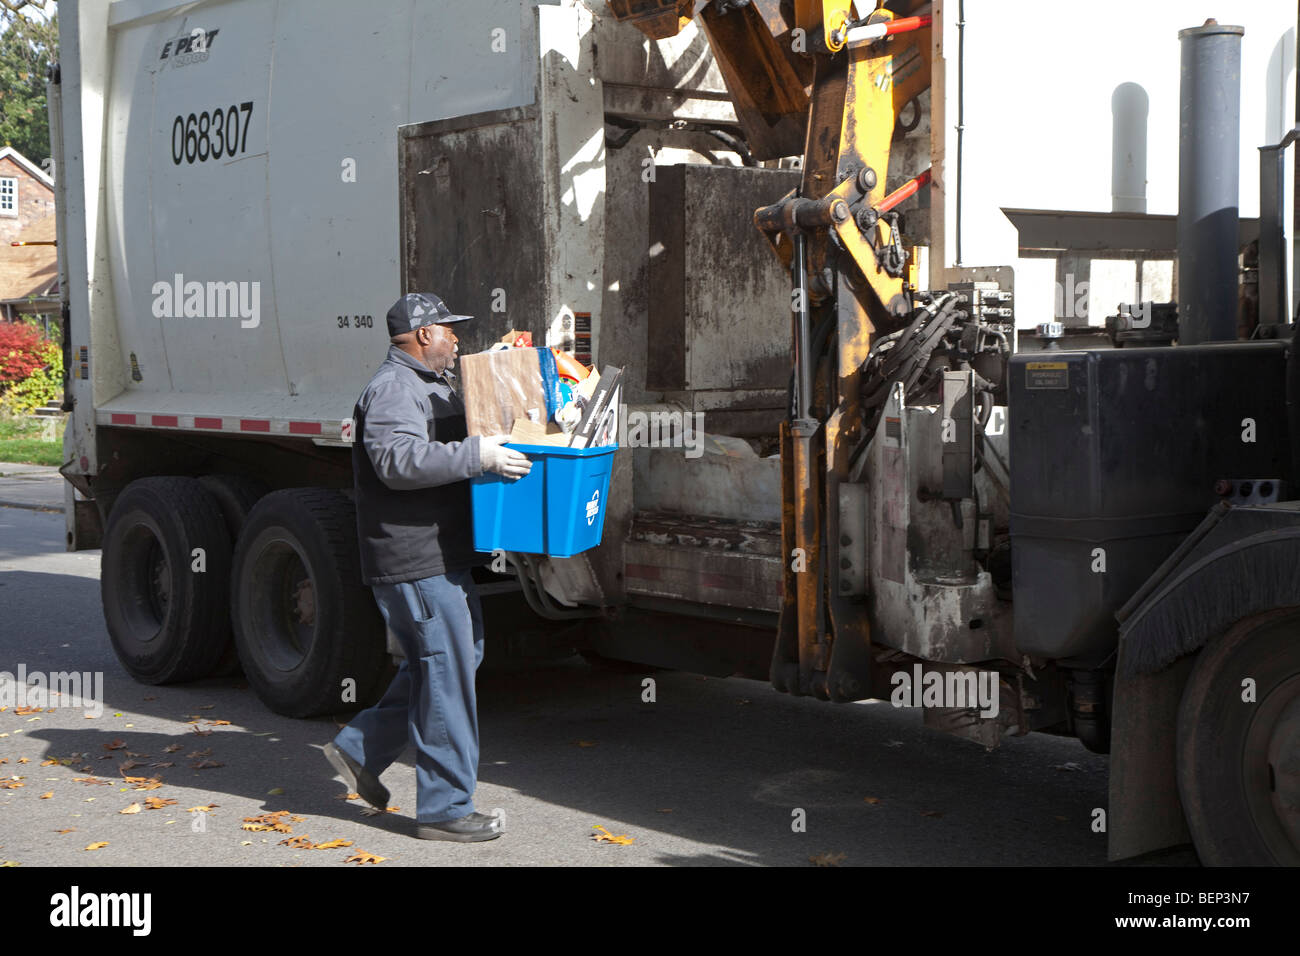 Detroit, Michigan - A city worker collects materials for recycling from a home on Detroit's east side. - Stock Image